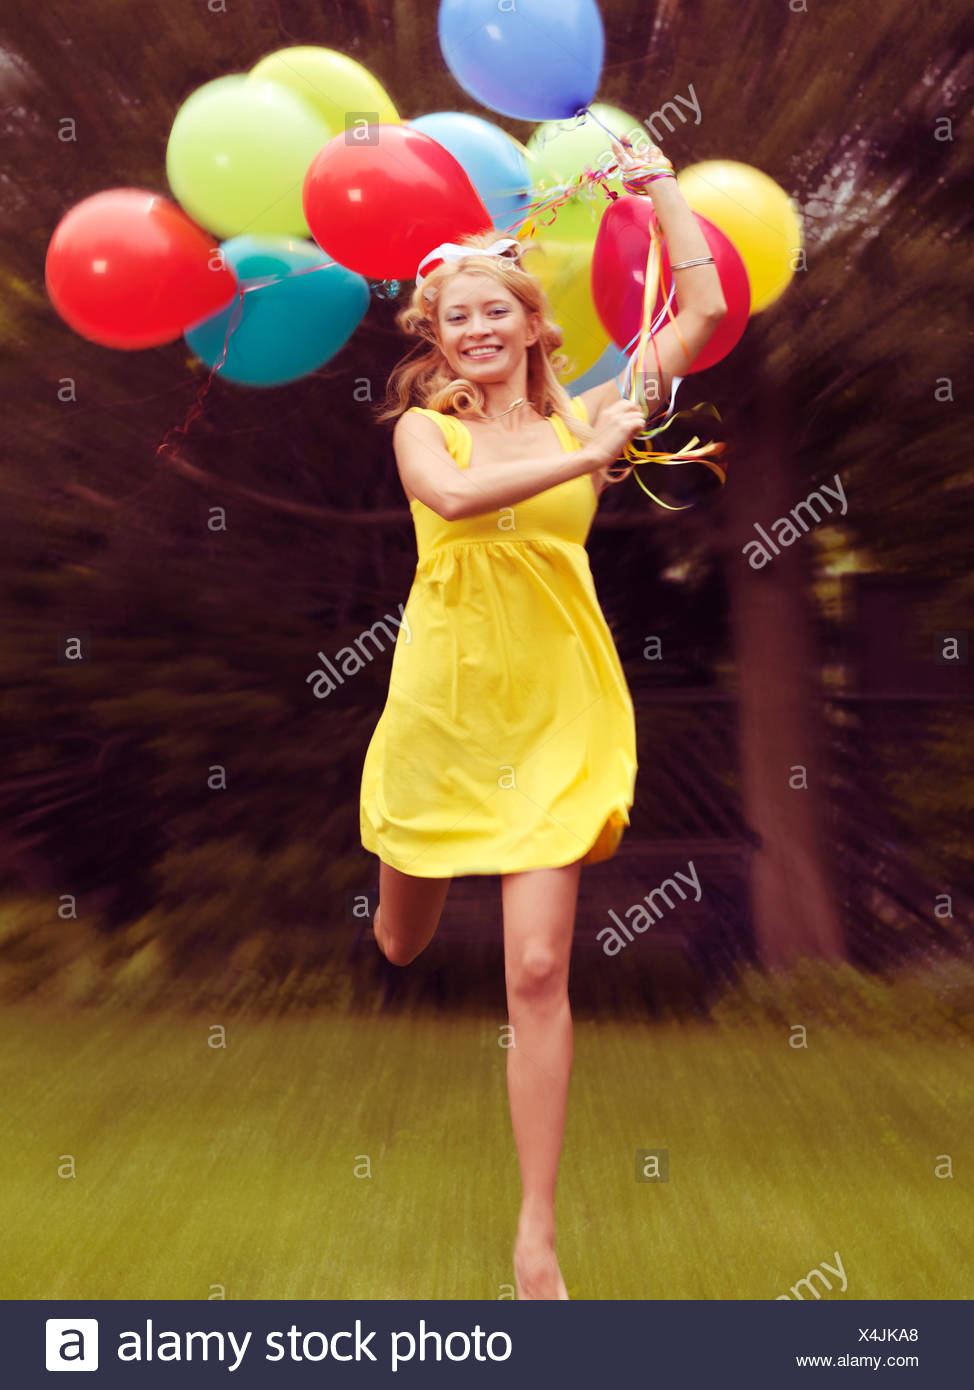 Happy young woman in summer dress running with colorful balloons - Stock Image